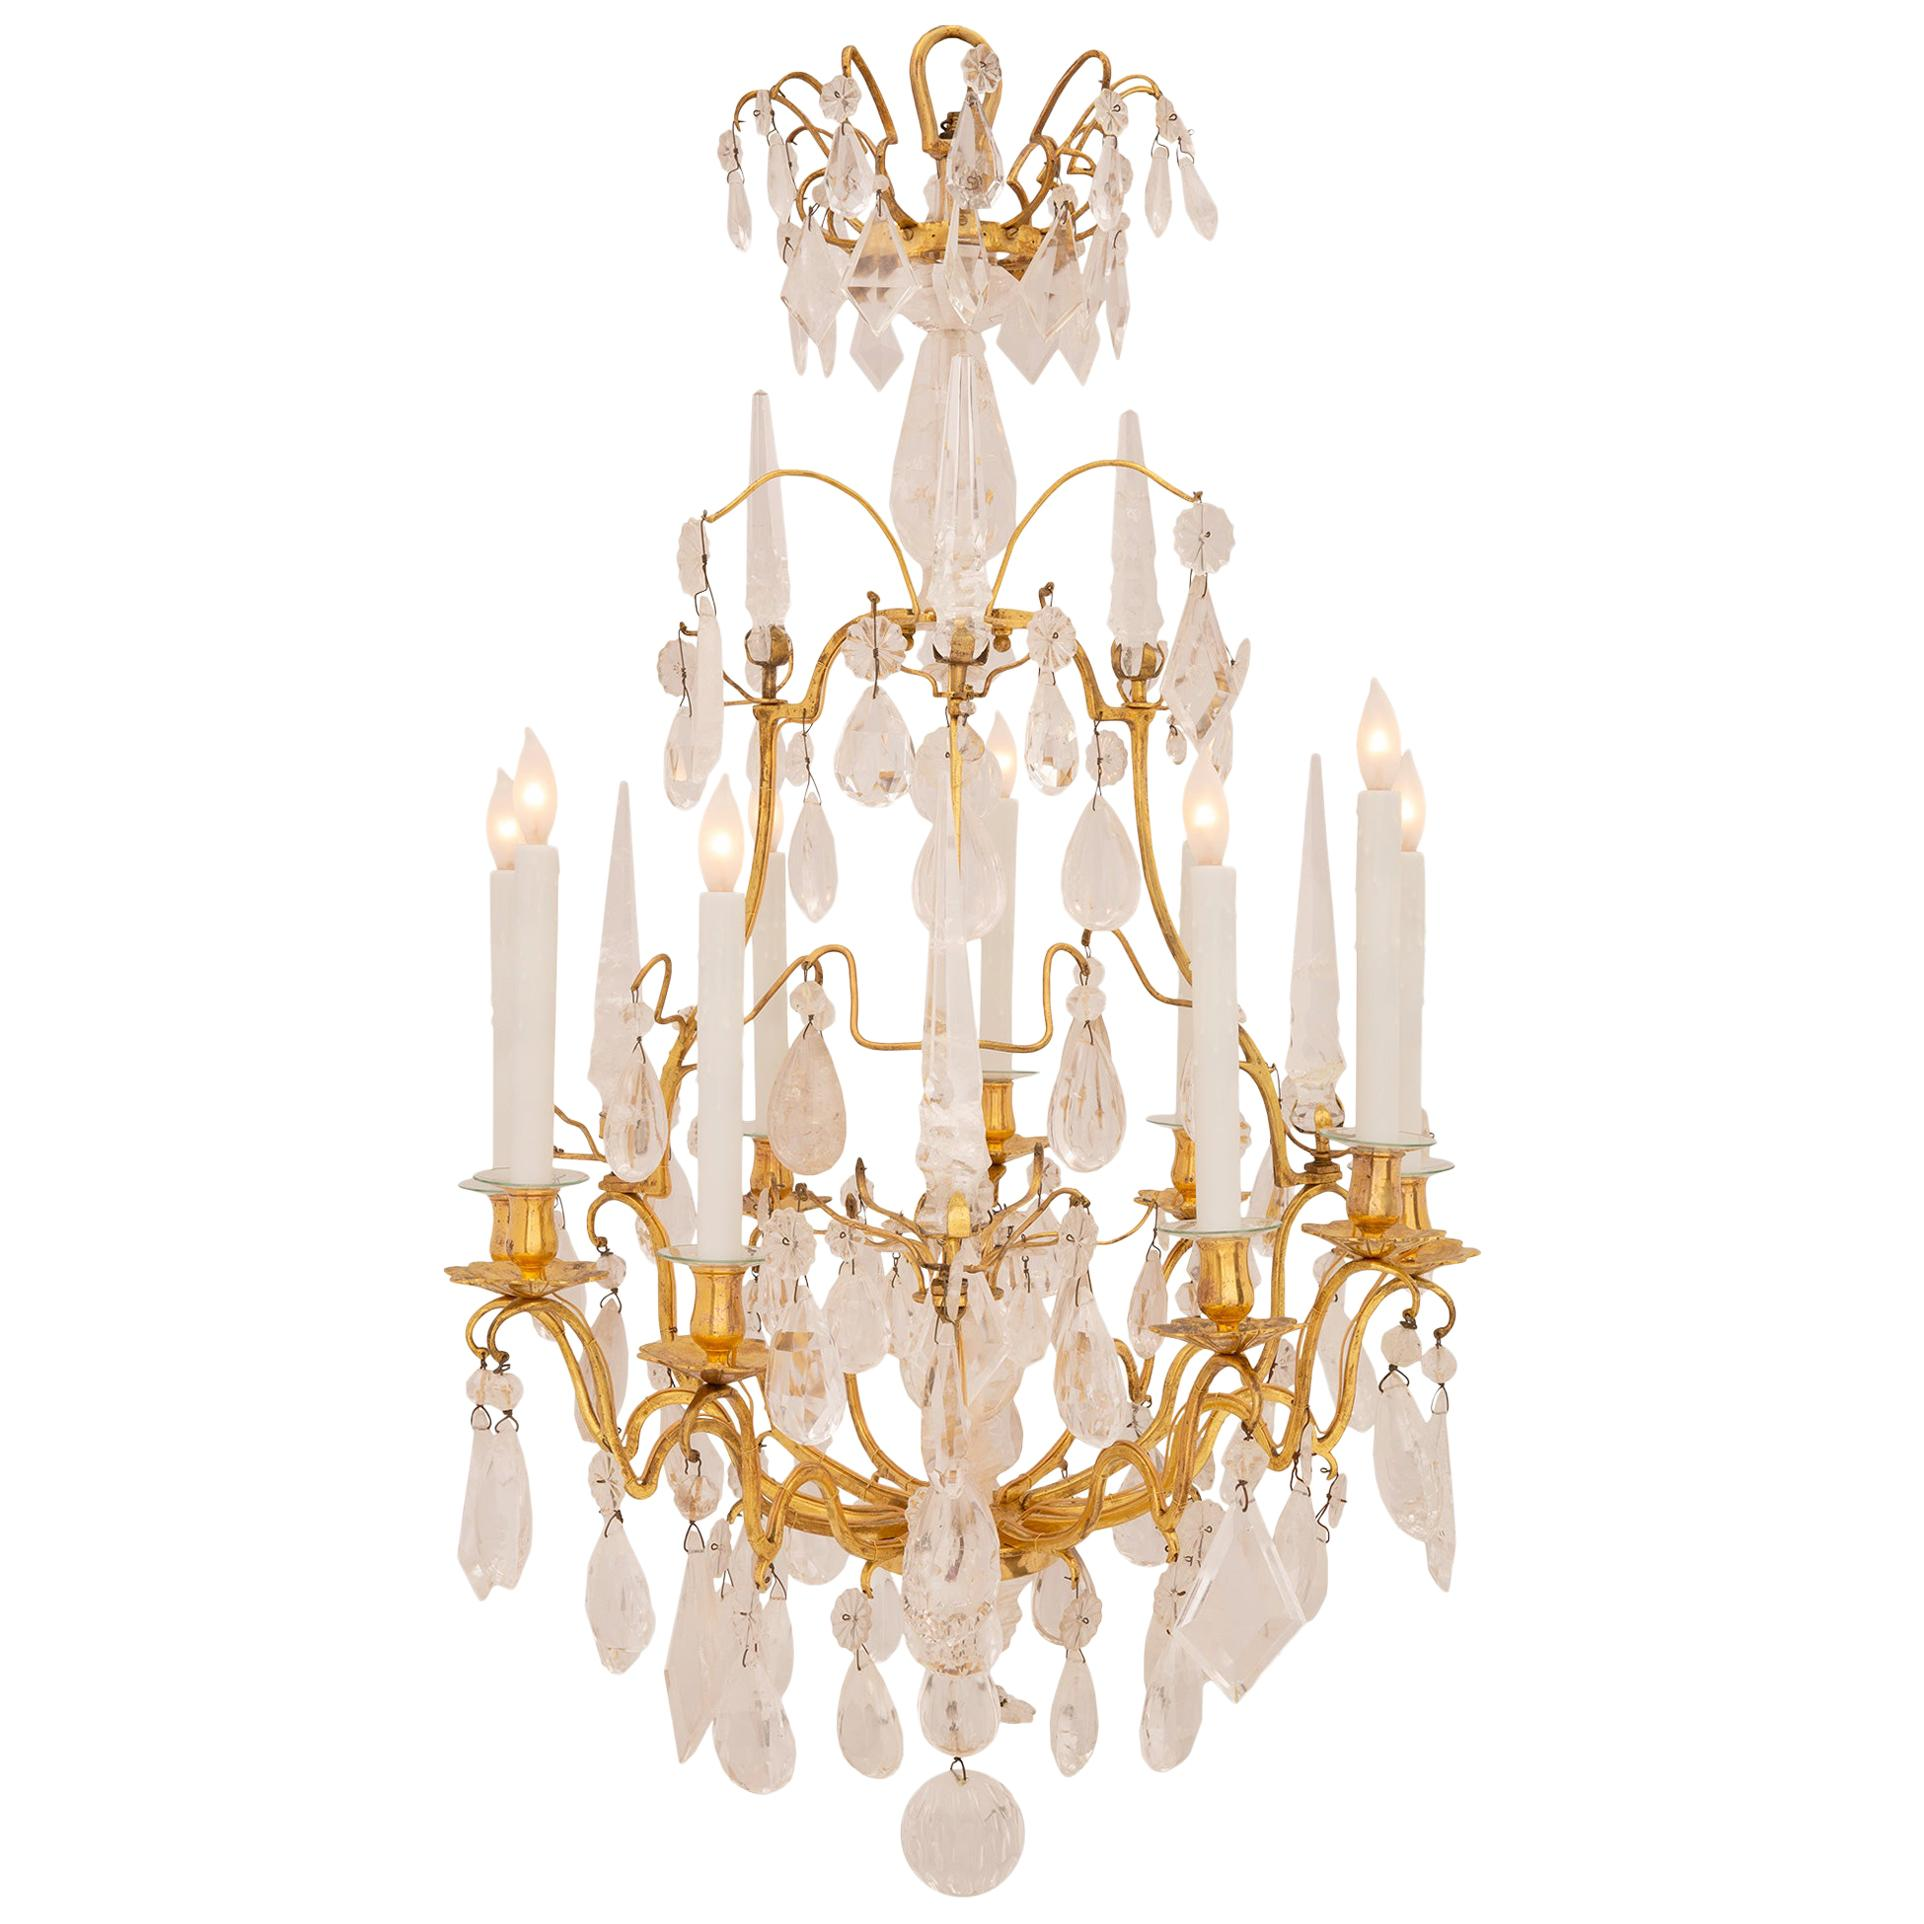 1950 colonial crystal chandelier. Cut glass shades